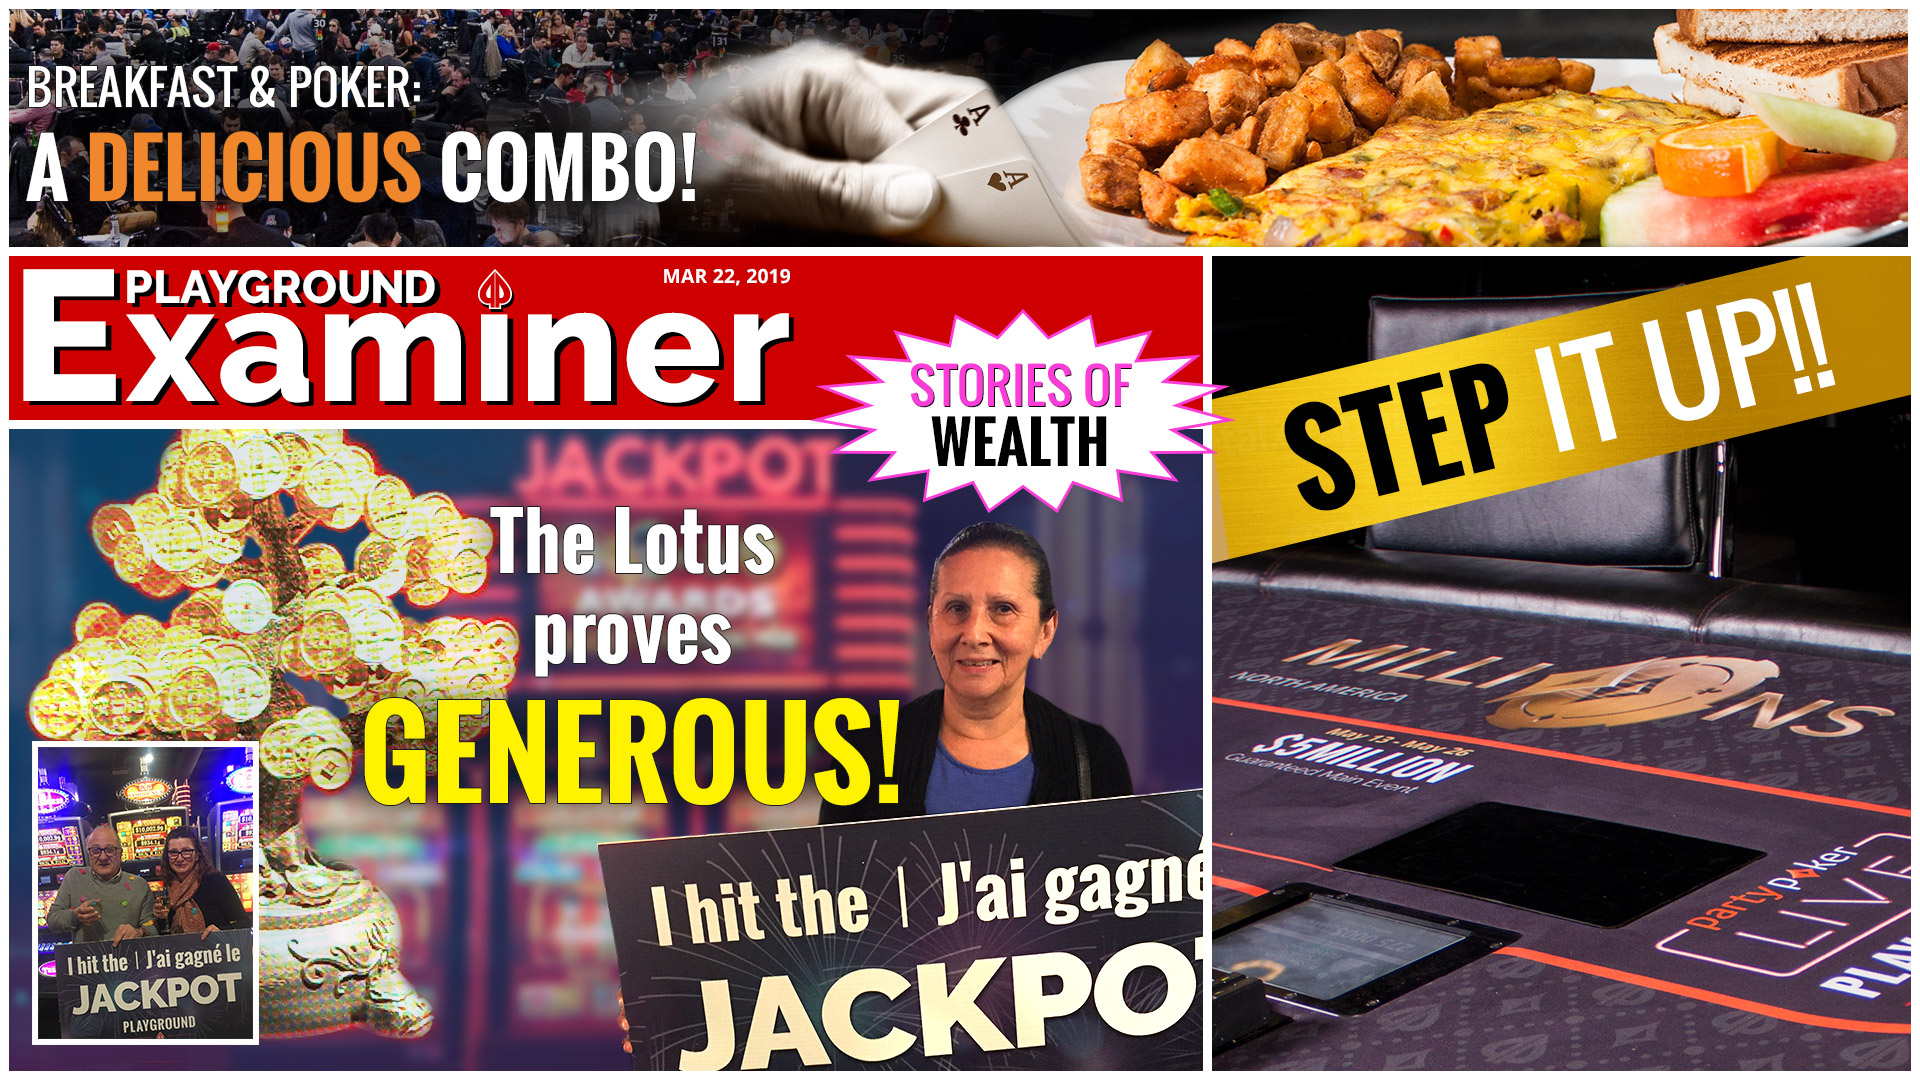 Jackpots, STEPS, and more!